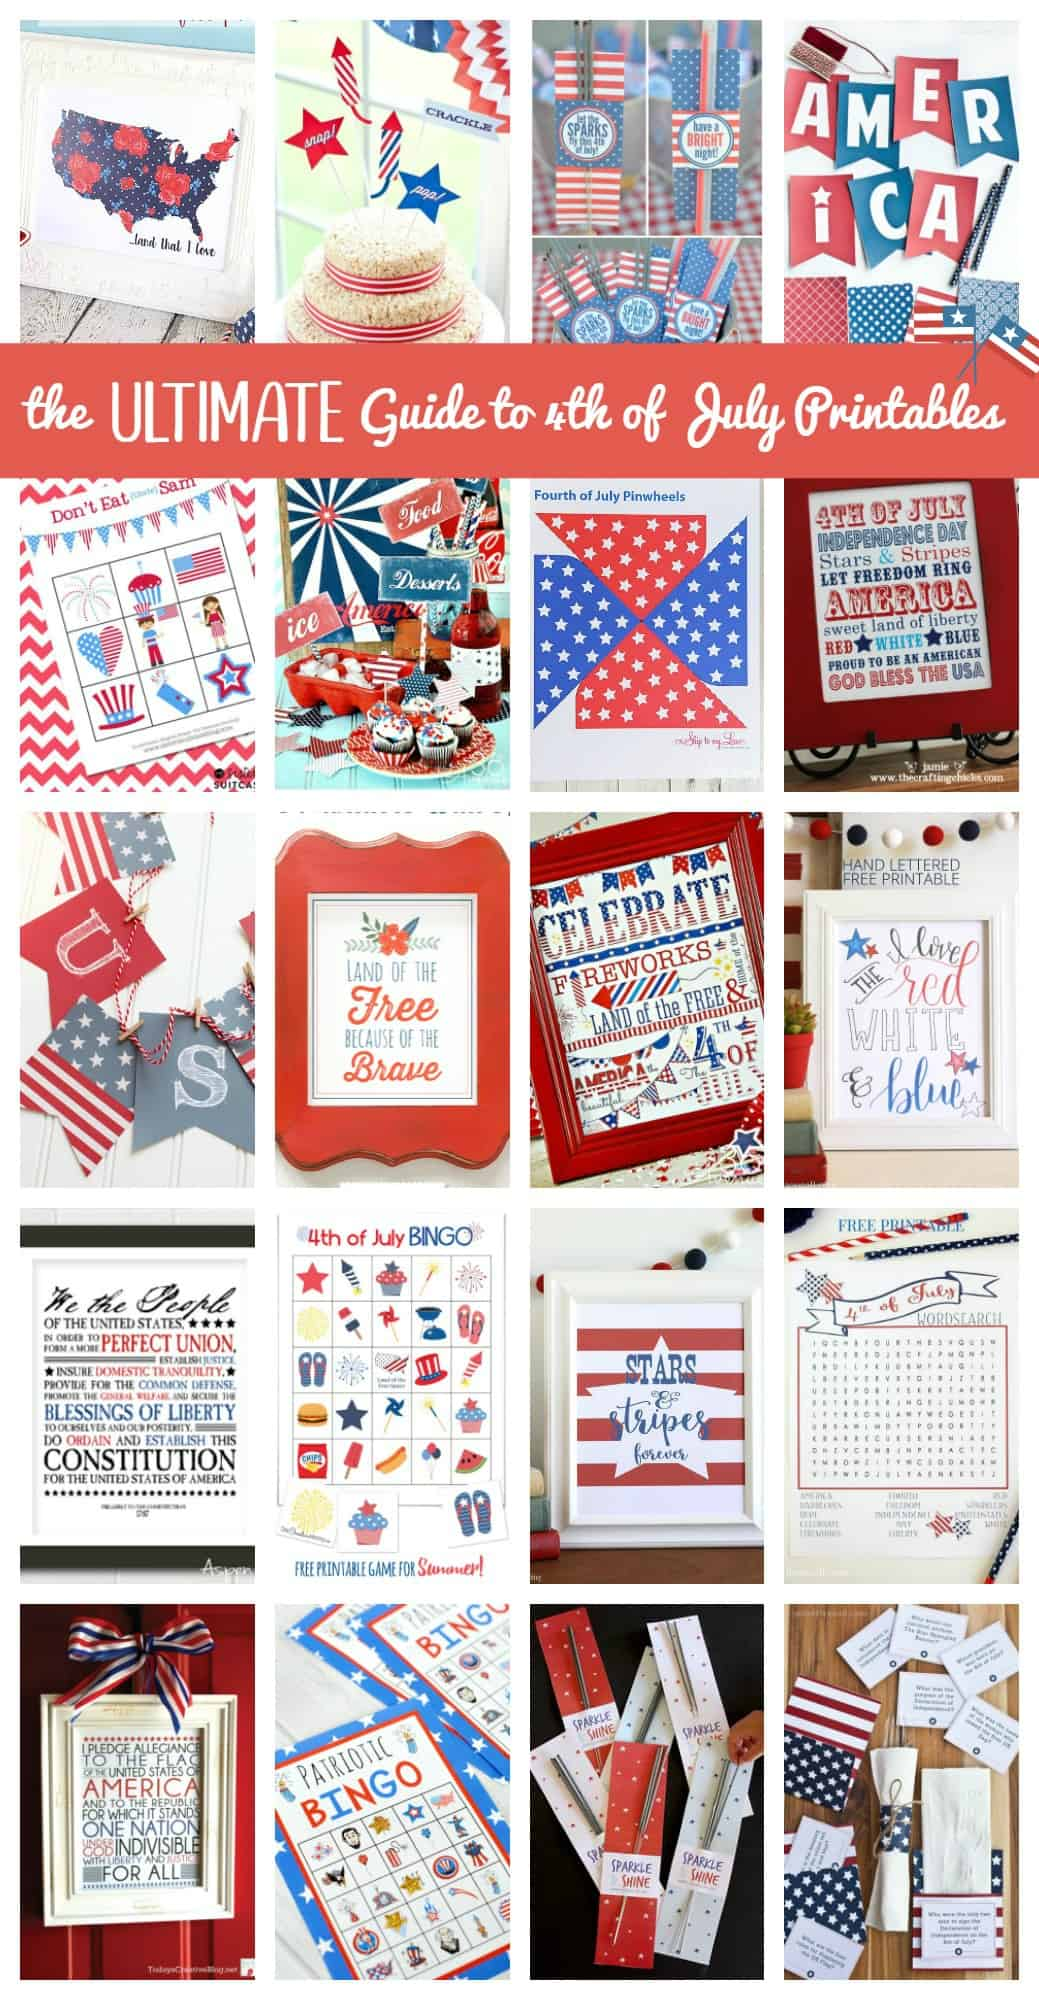 picture relating to 4th of July Trivia Printable identified as The Best Direct in the direction of 4th of July Printables - Generate Craft Delight in